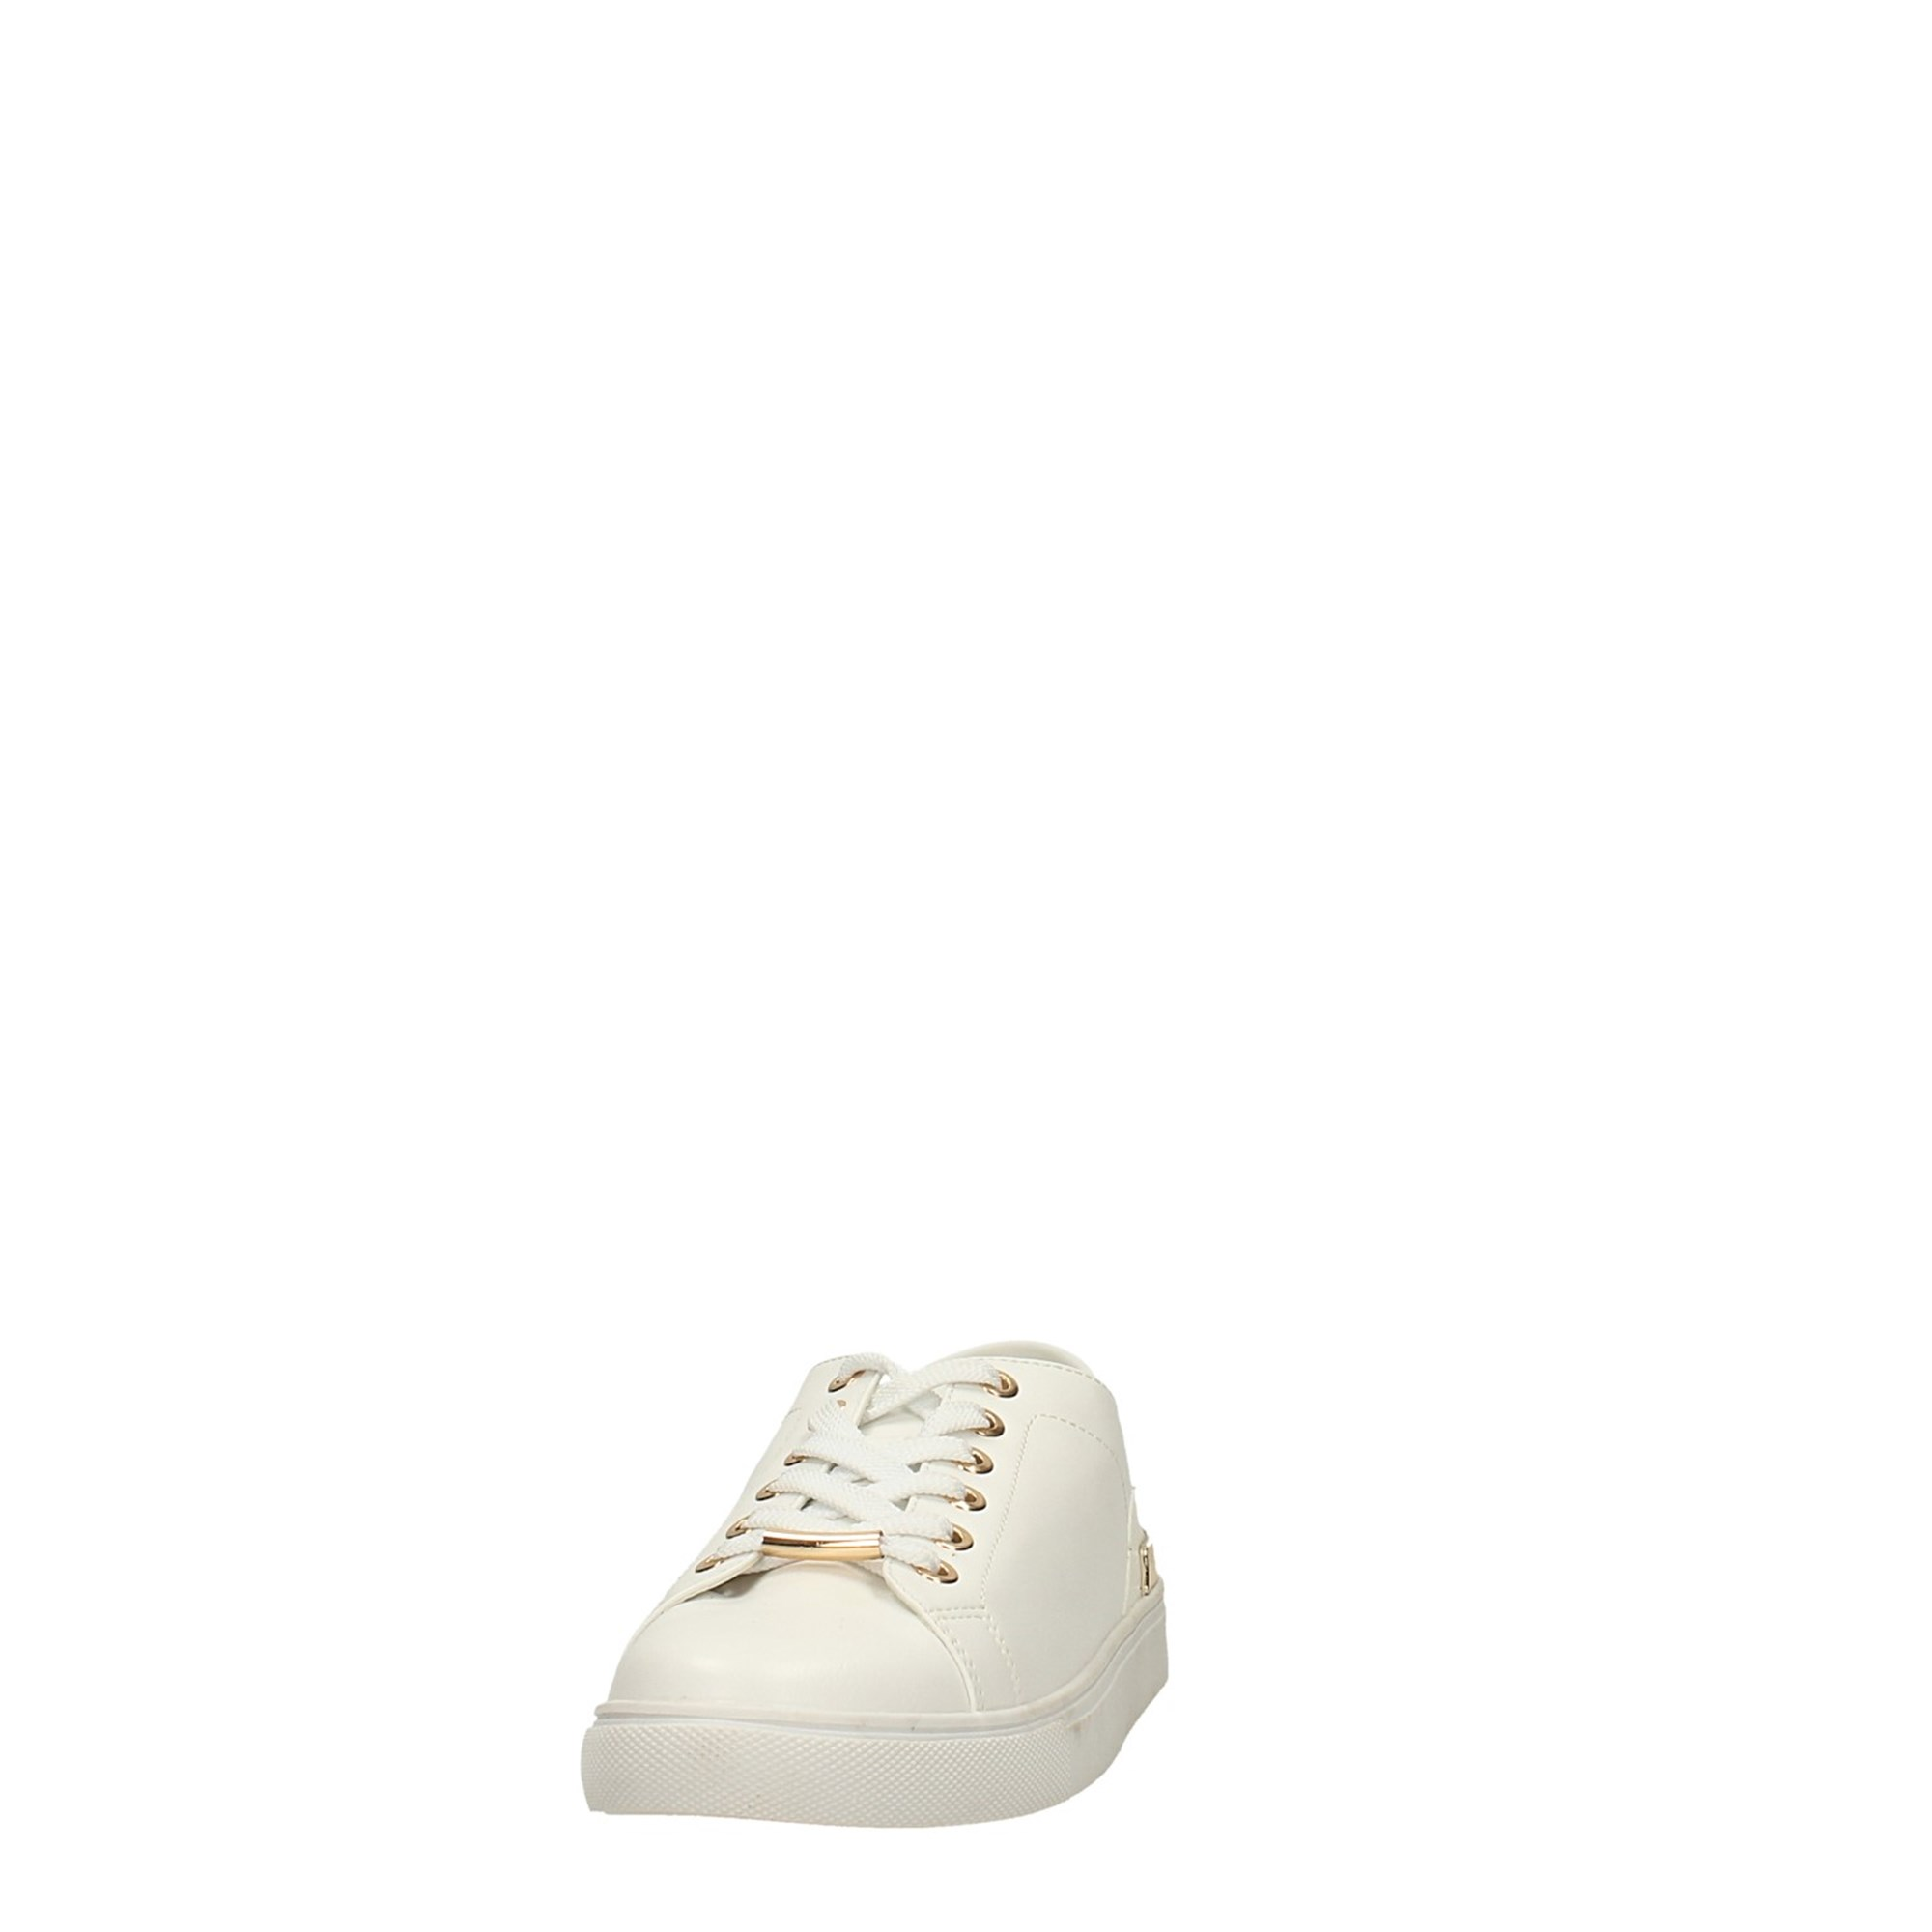 Tata Italia Shoes Woman Sneakers DS658-1B